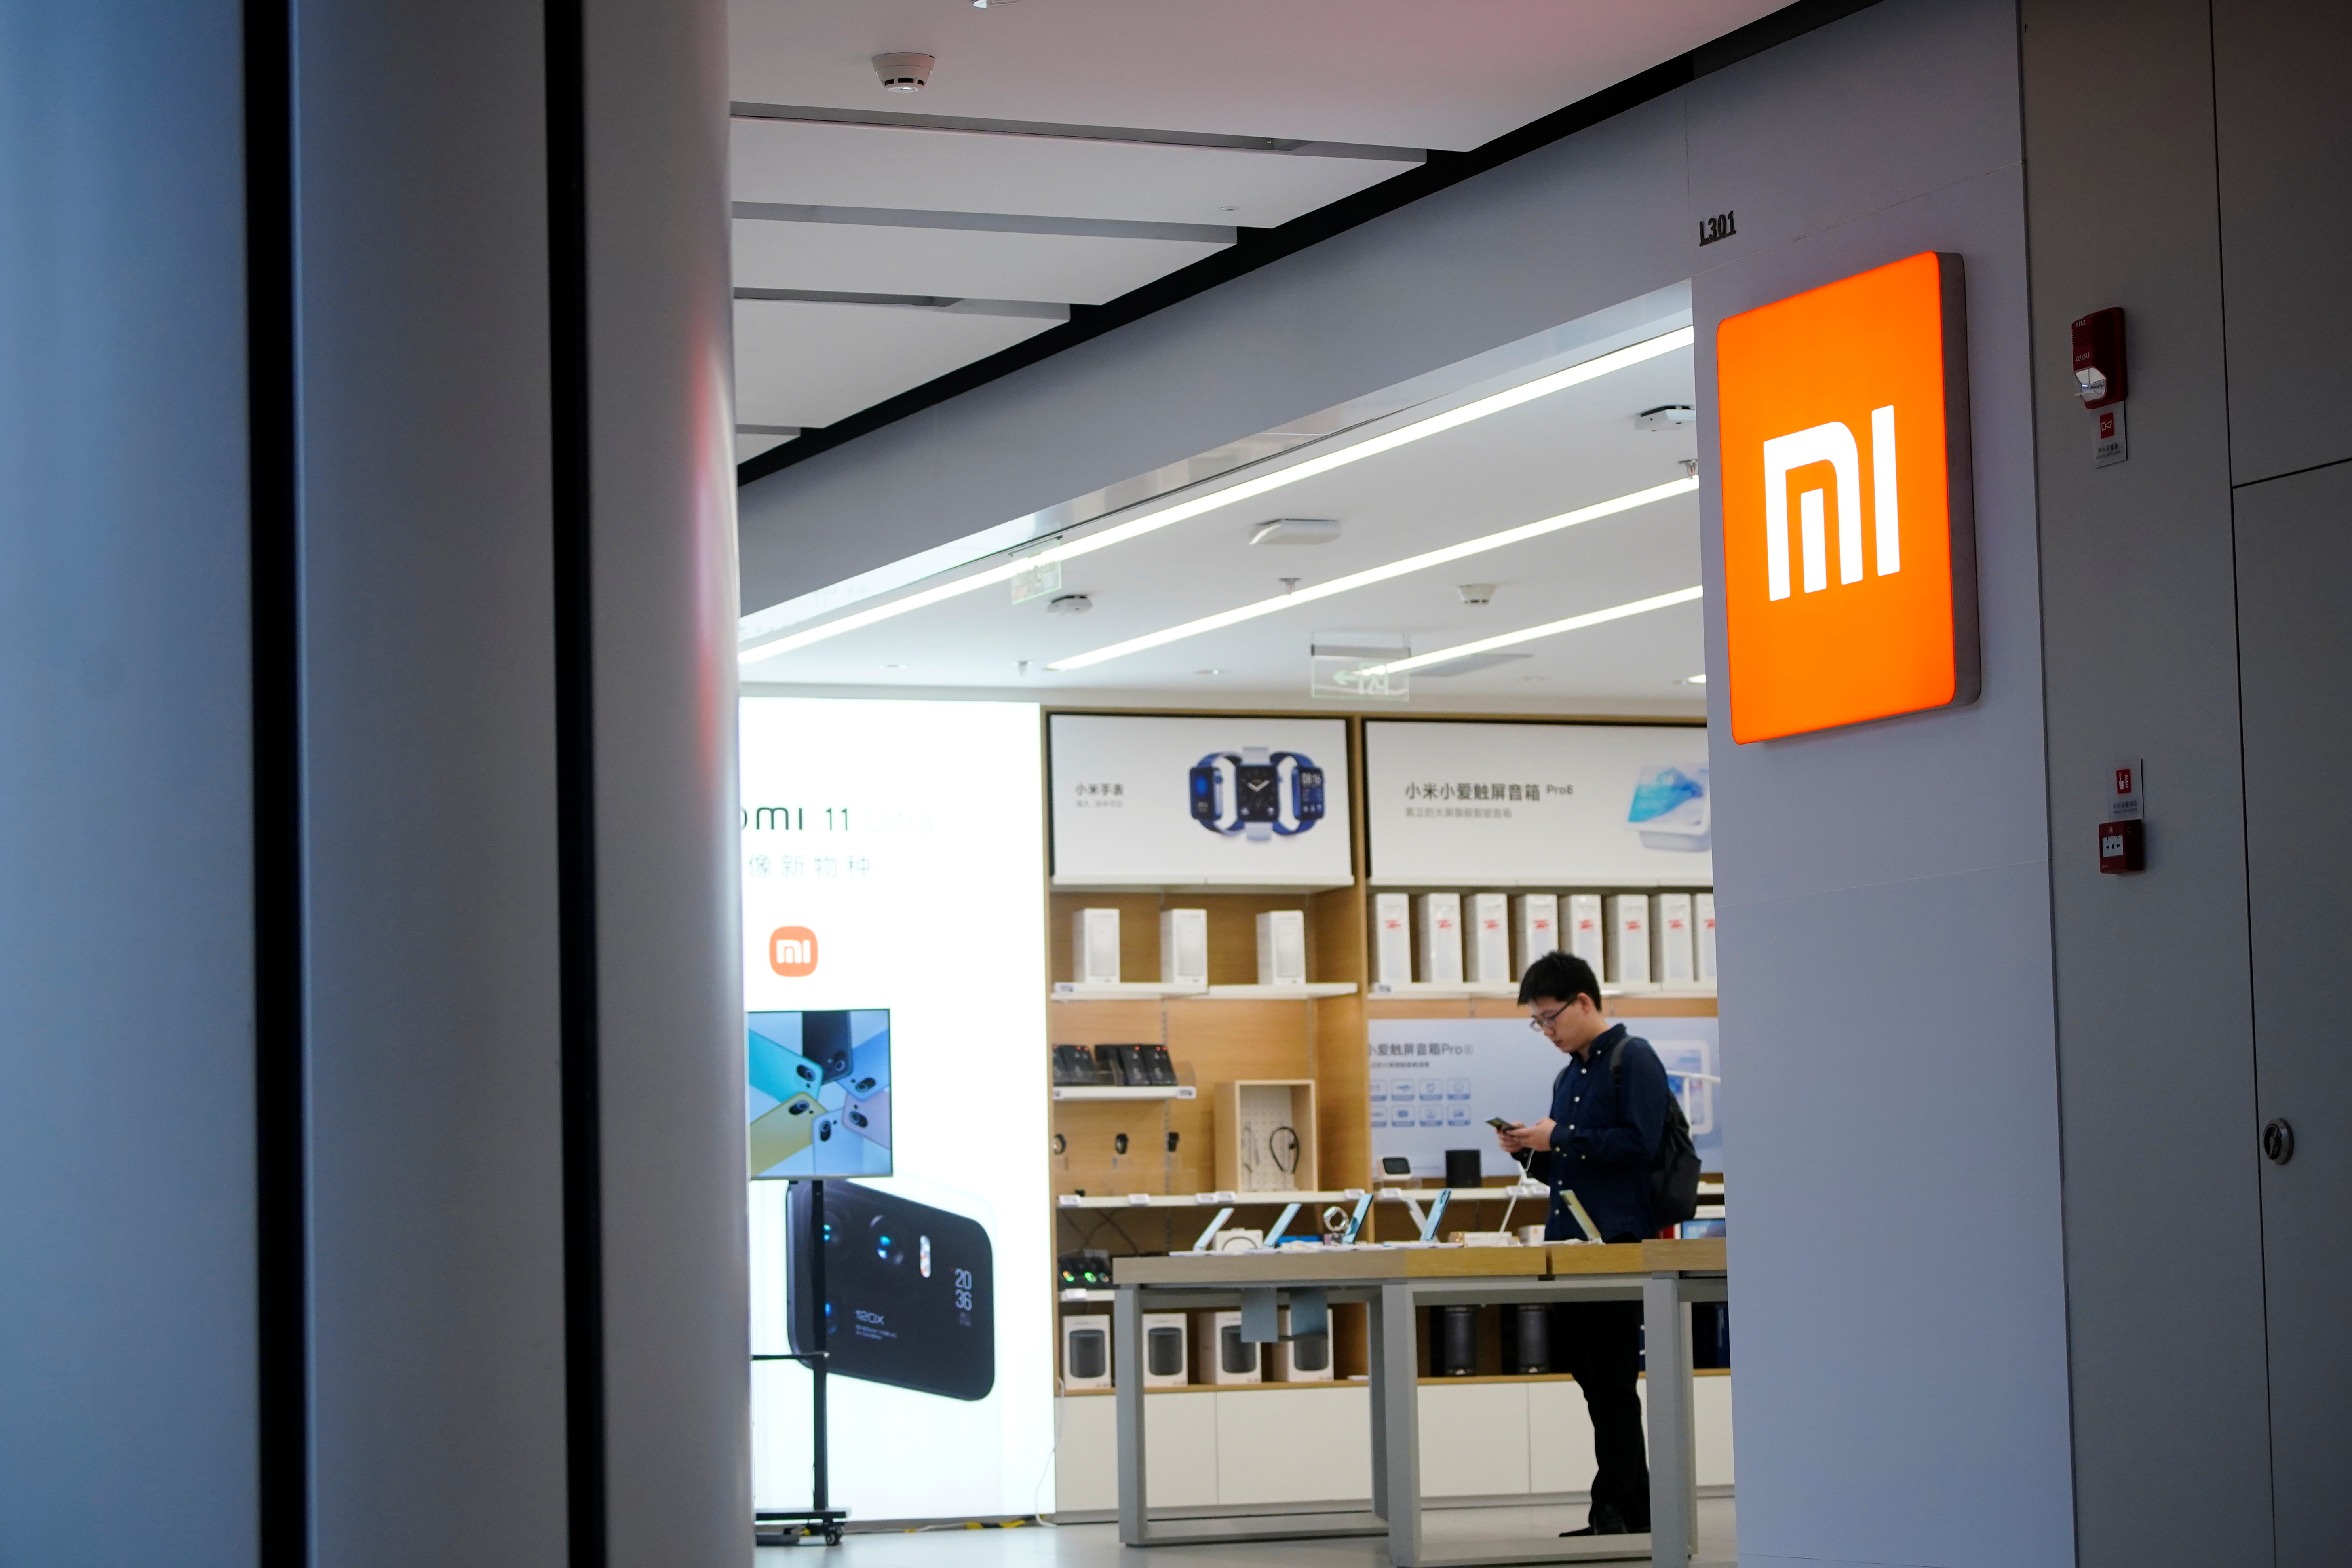 The Xiaomi logo is seen at a Xiaomi shop, in Shanghai, China May 12, 2021. REUTERS/Aly Song/File photo